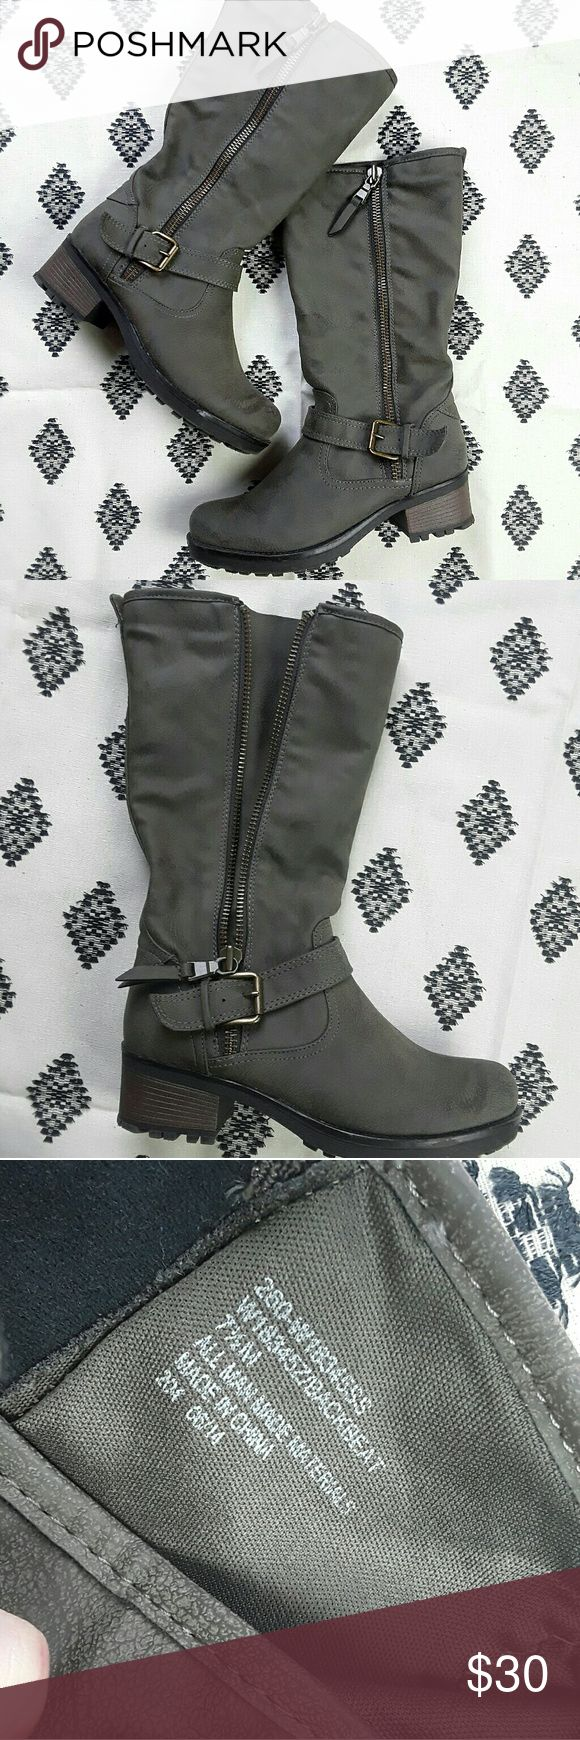 White Mountain Stone Boots 7.5M White Mountain Stone Color Tall boots size 7 1/2 M, excellent condition very small scuff on side of soul please see pics white mountain  Shoes Winter & Rain Boots